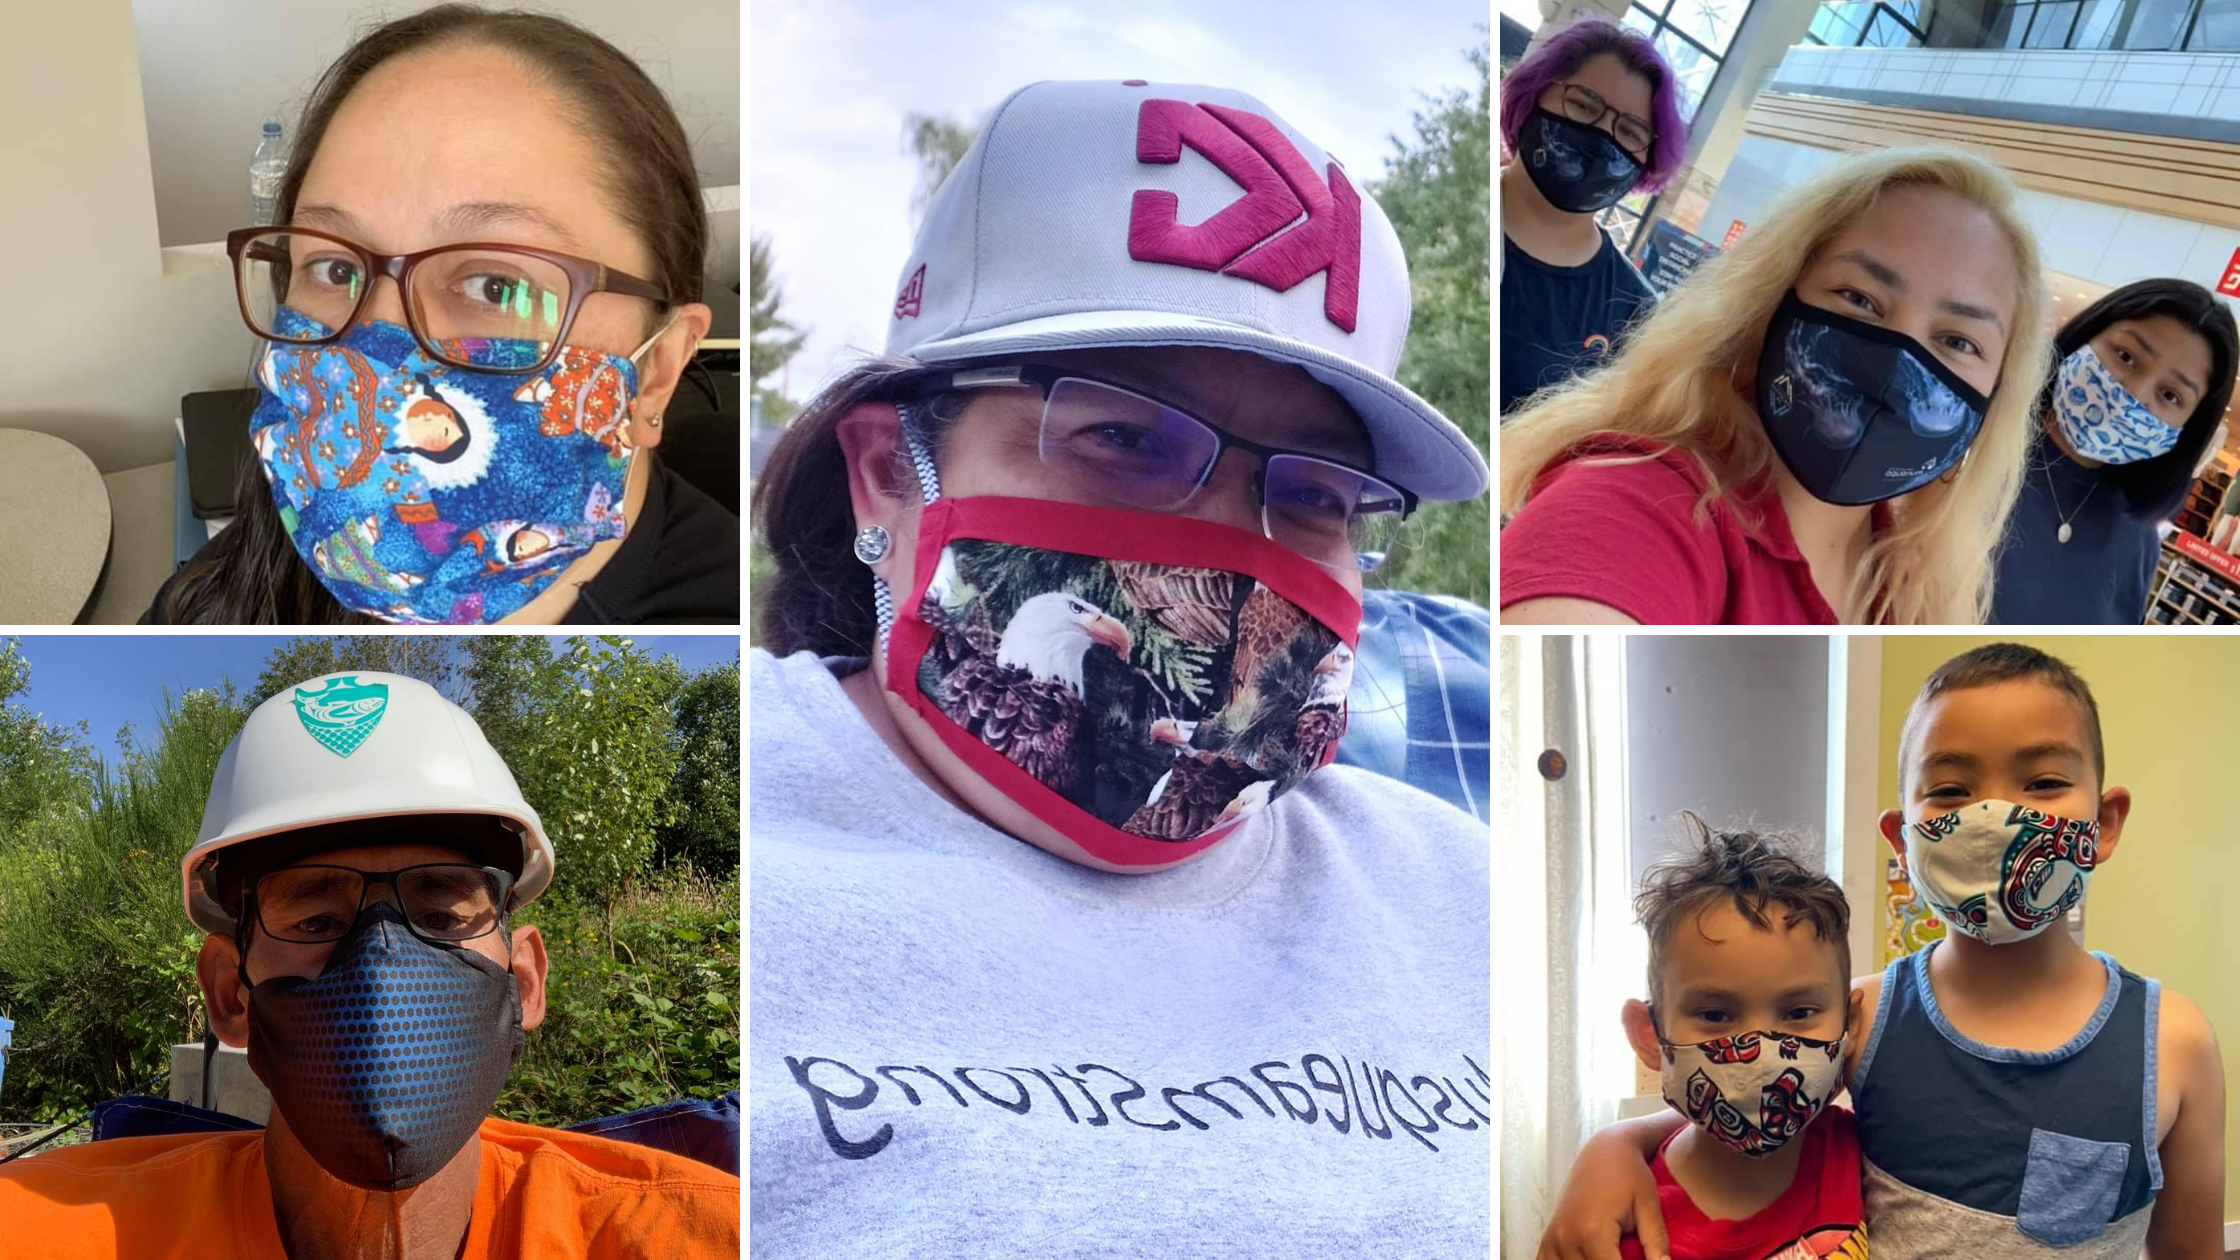 Photos of Musqueam people in face masks